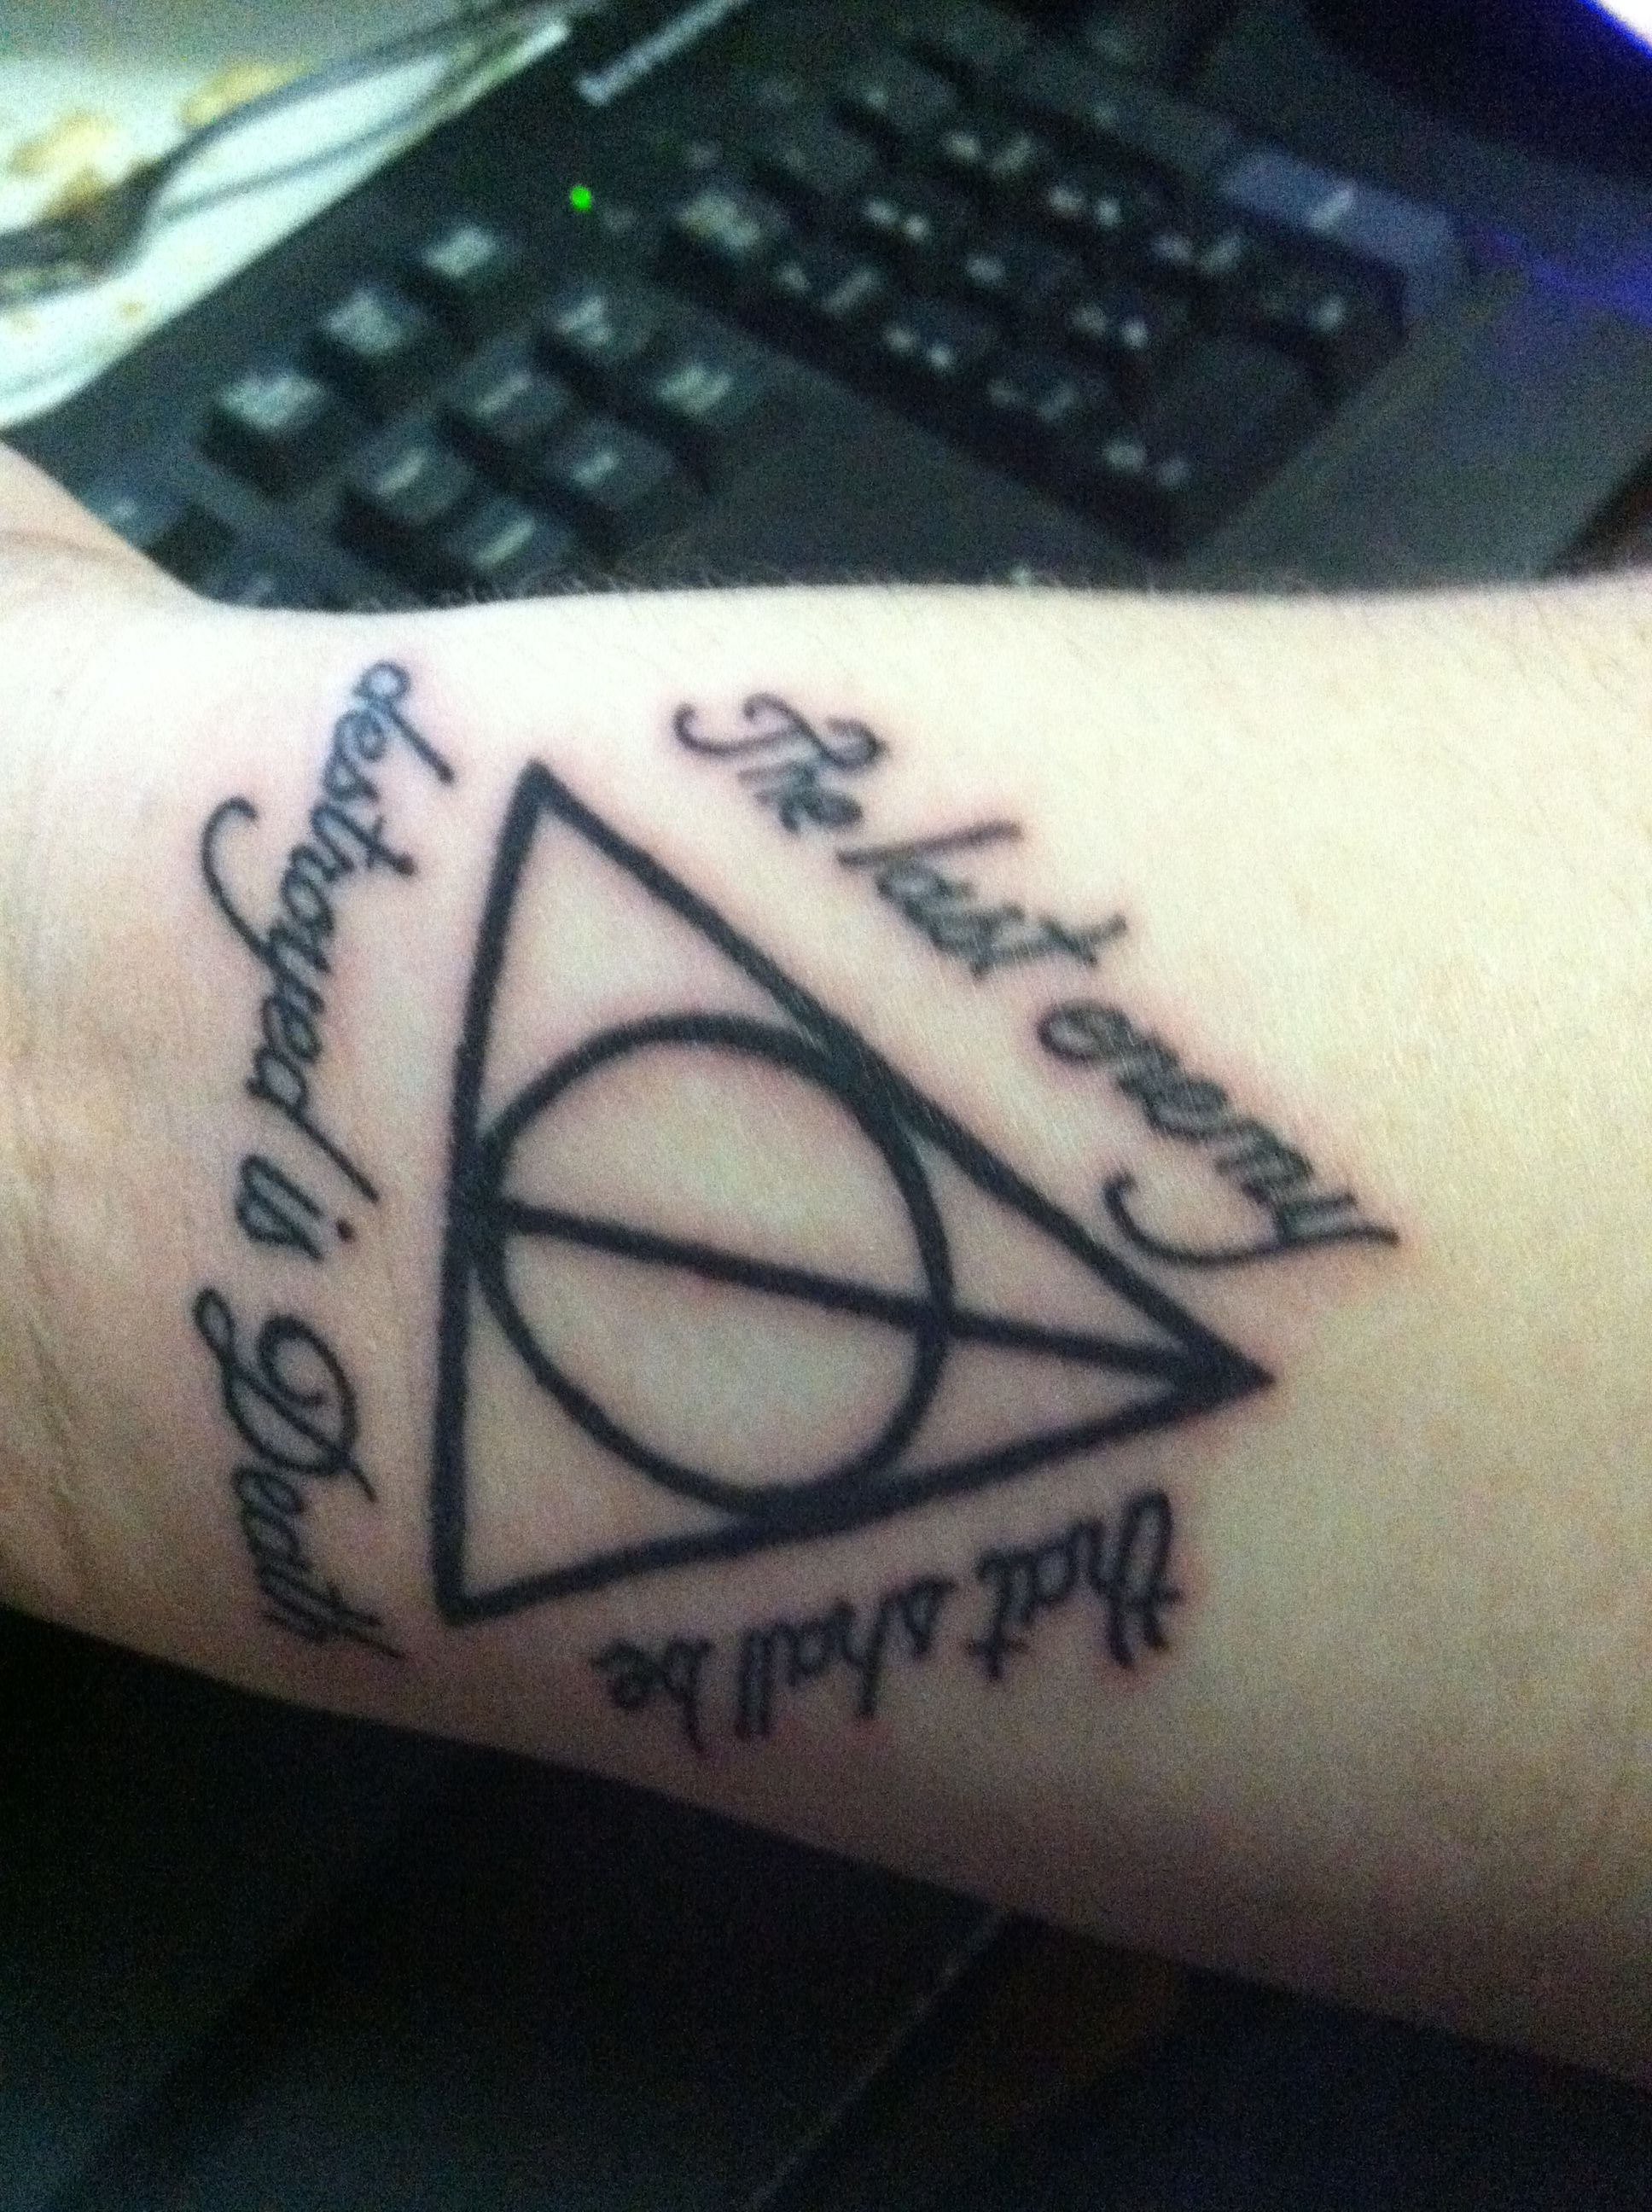 Harry Potter And The Deathly Hallows Tattoo The Last Enemy That